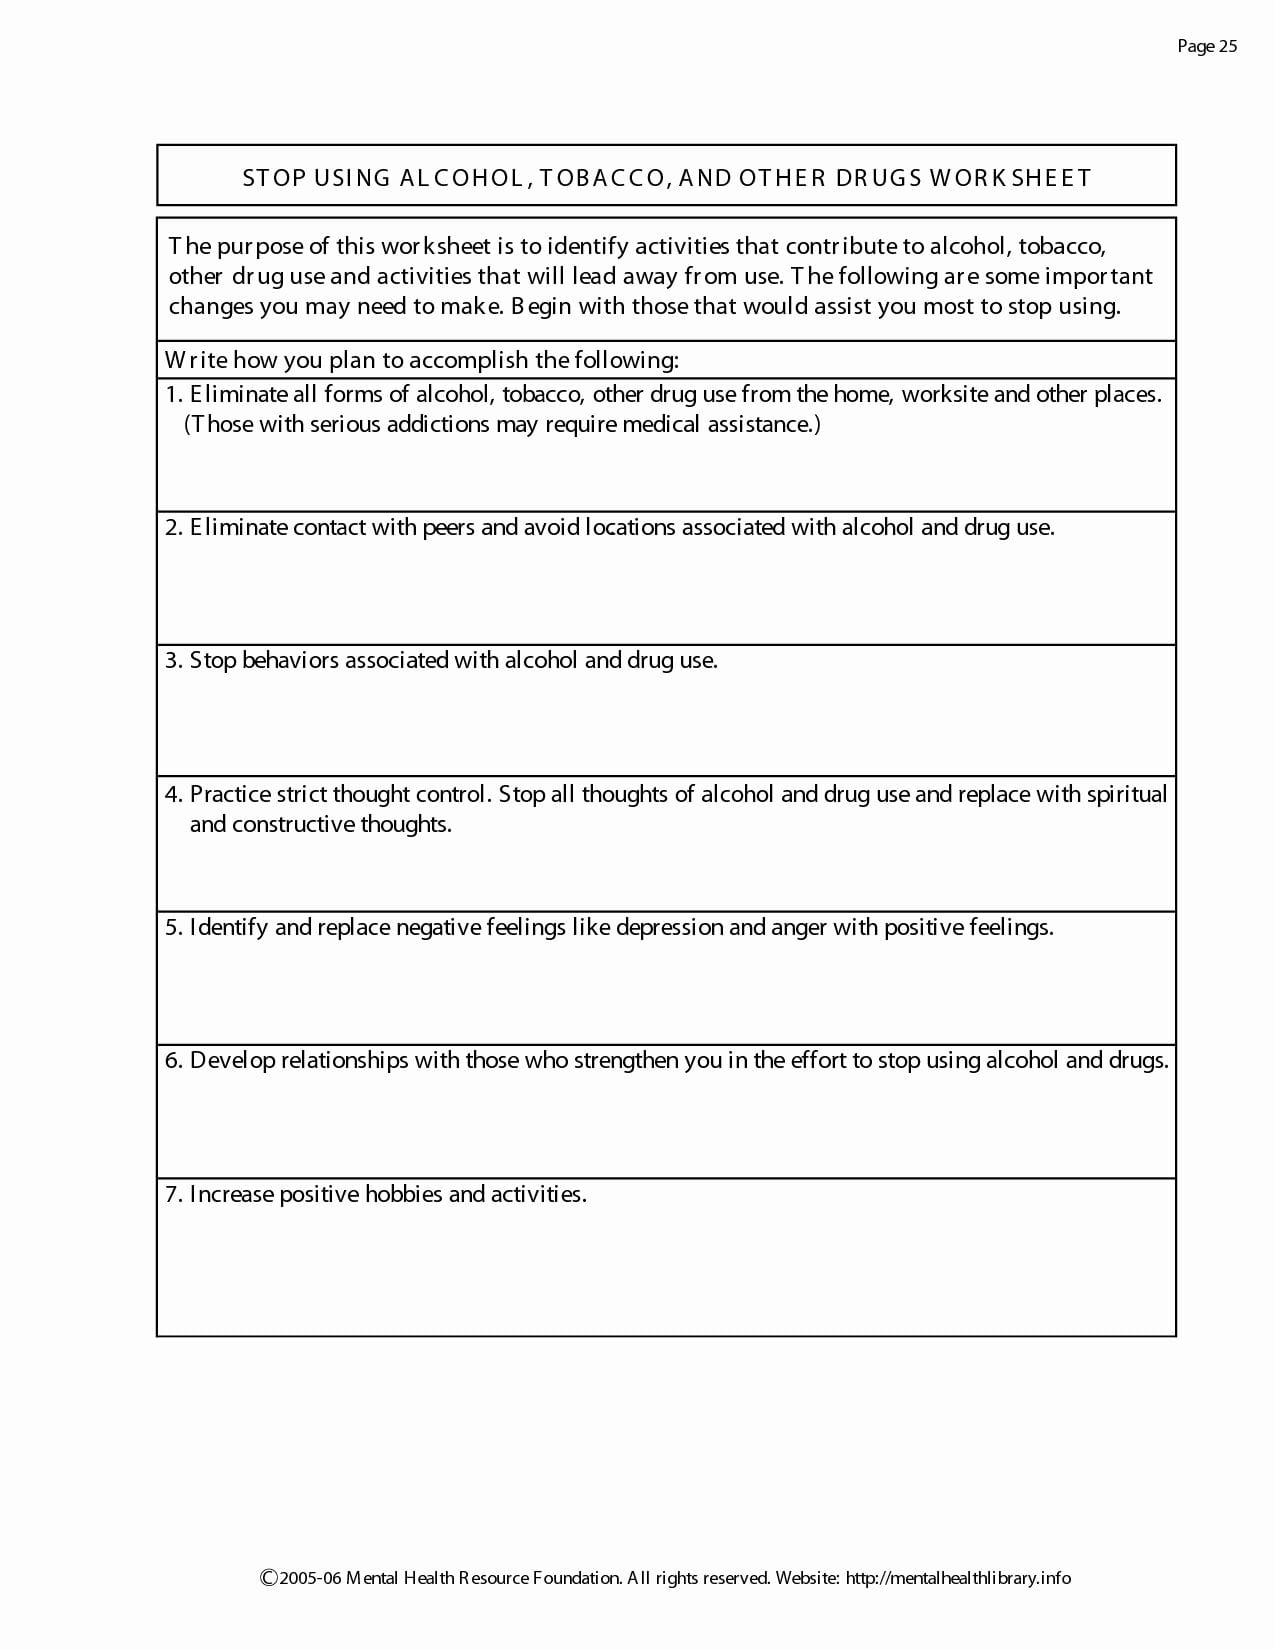 17 Substance Abuse Recovery Worksheets Cprojects Resume